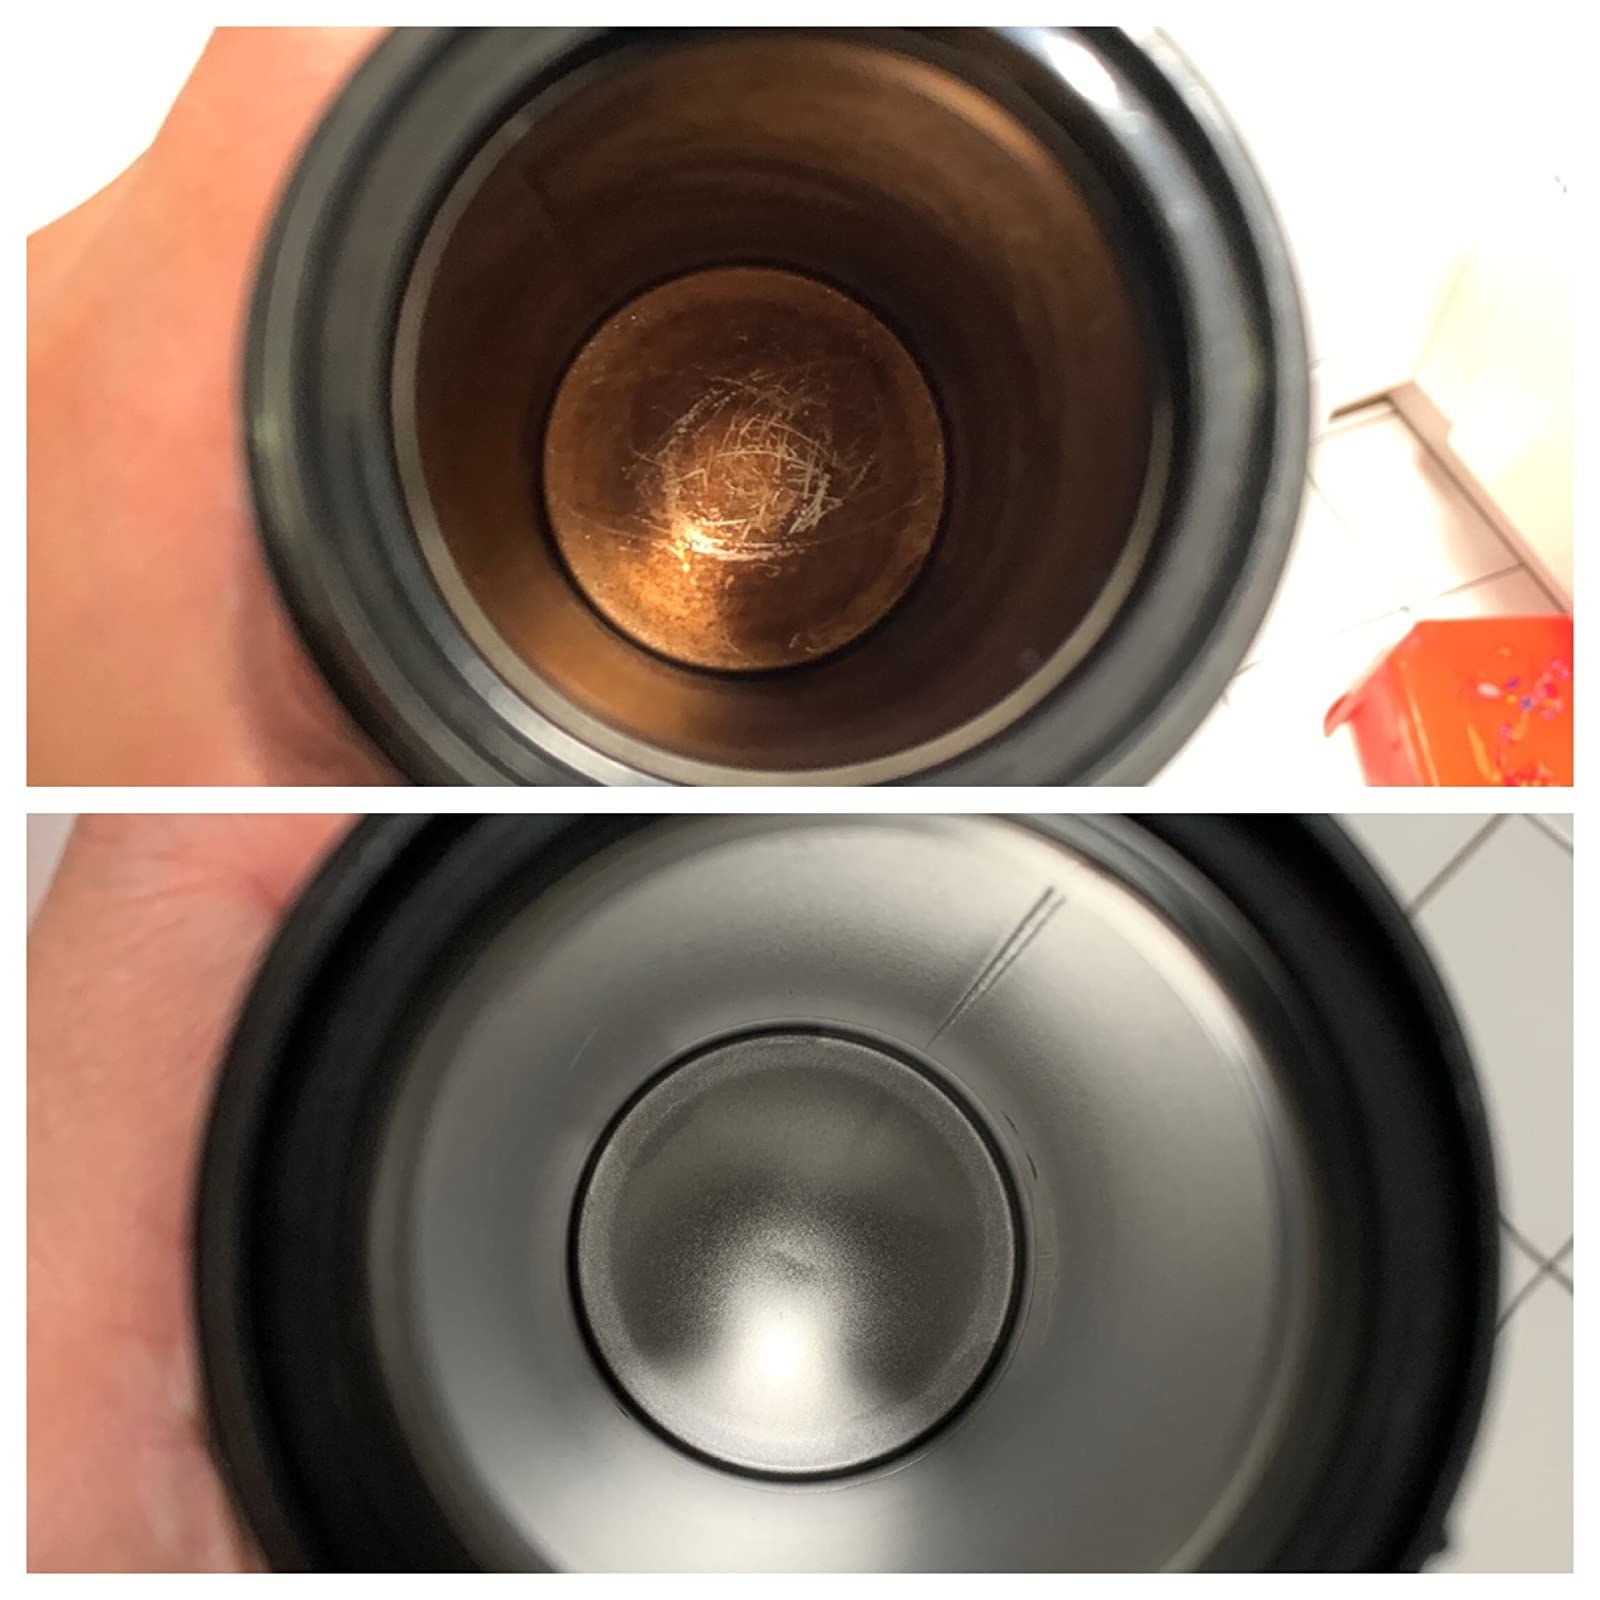 reviewer photo showing their bottle before and after using the tablets